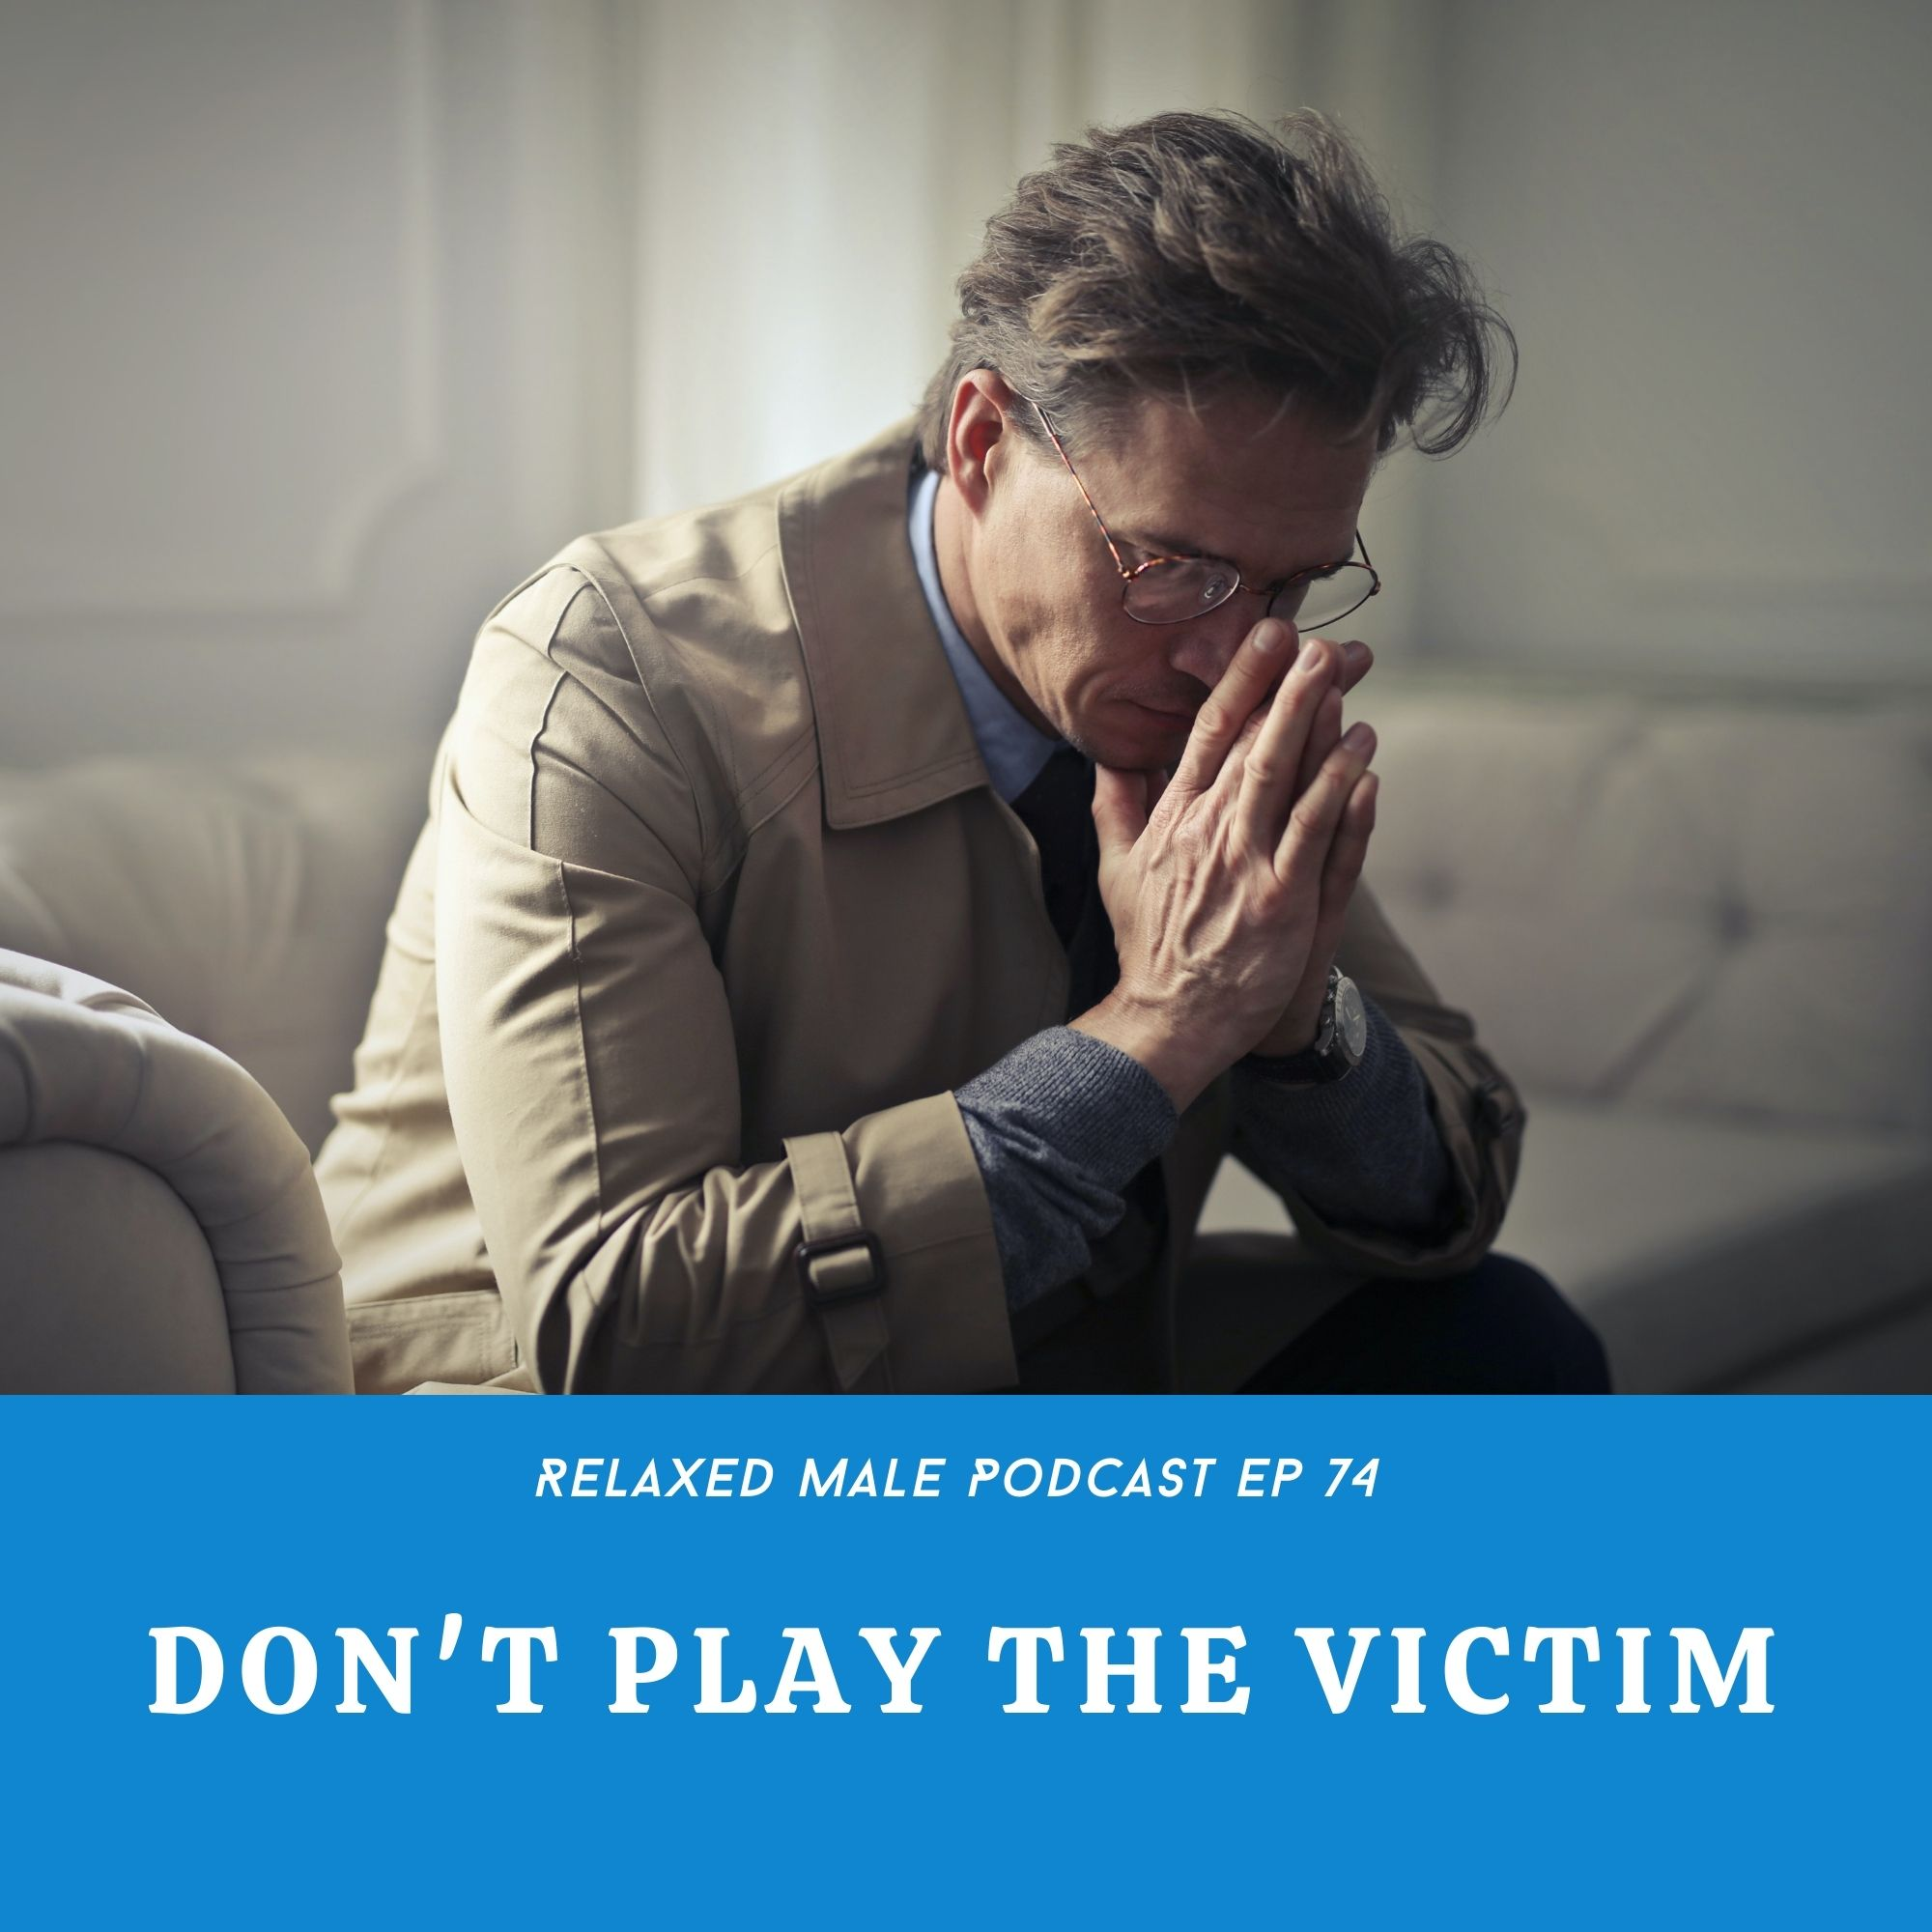 Playing The Victim Means You're Playing to Lose